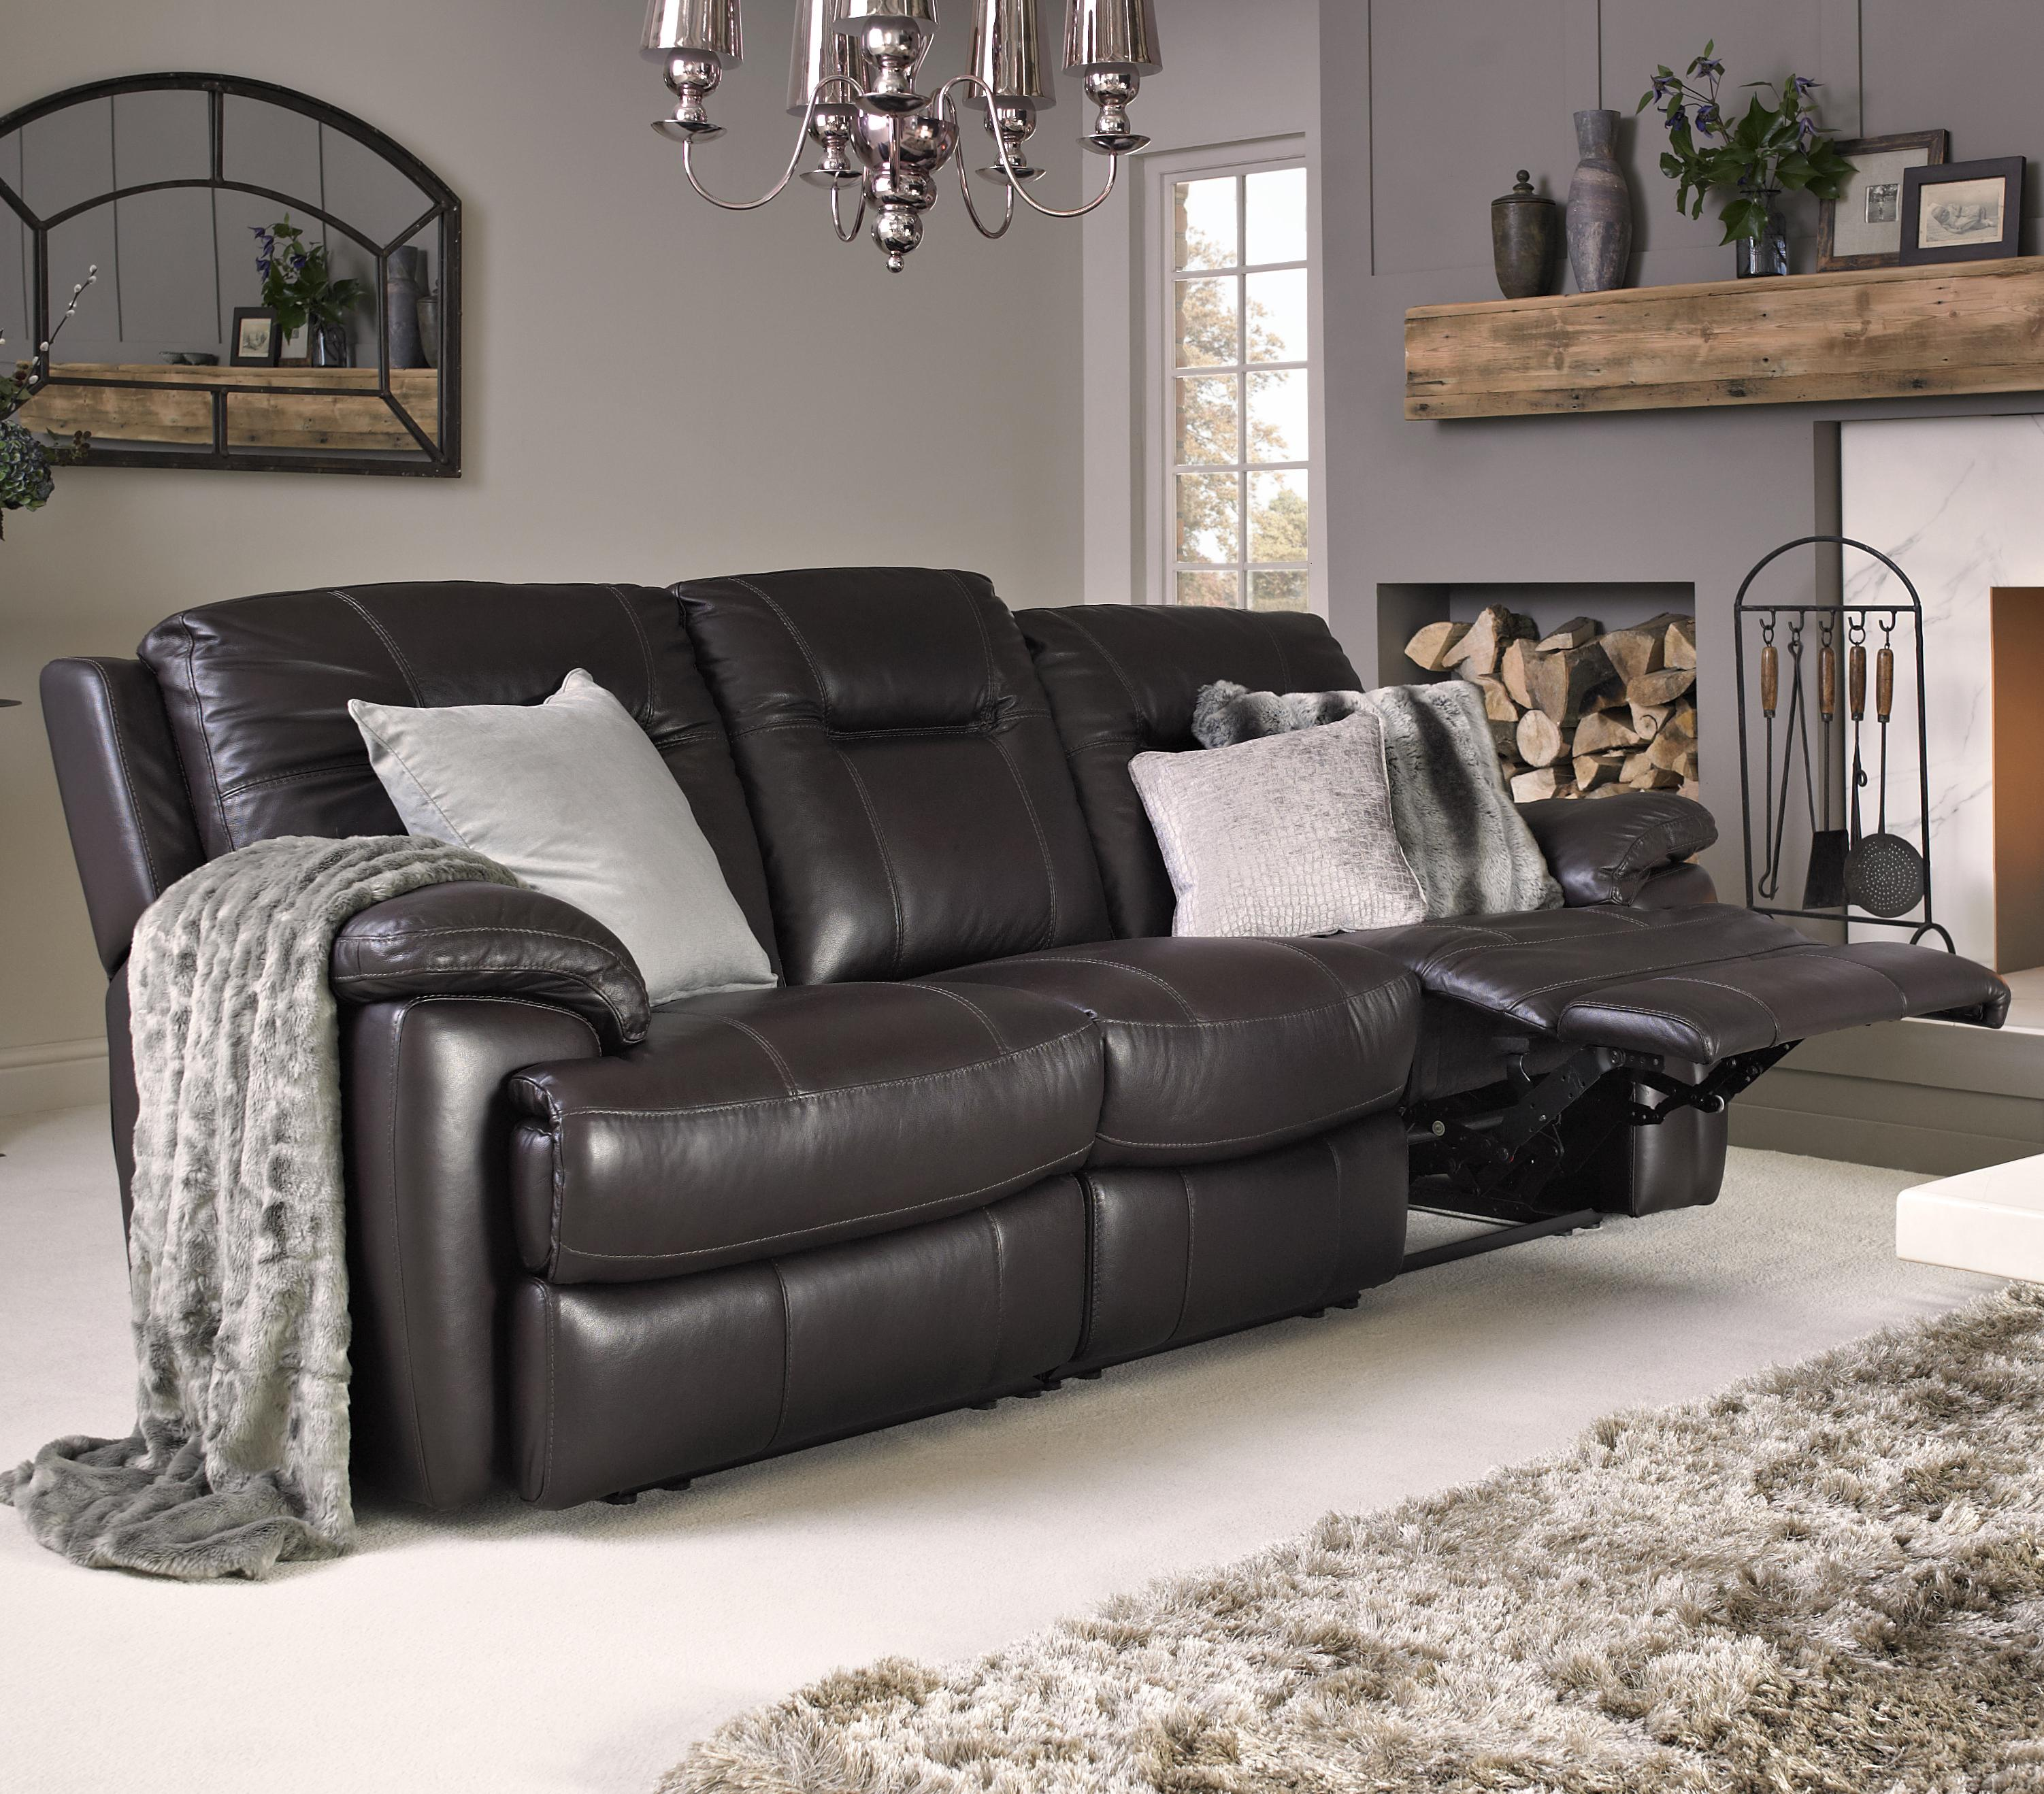 htl sofa range standard dimensions in cm 10136 contemporary leather match power fashion